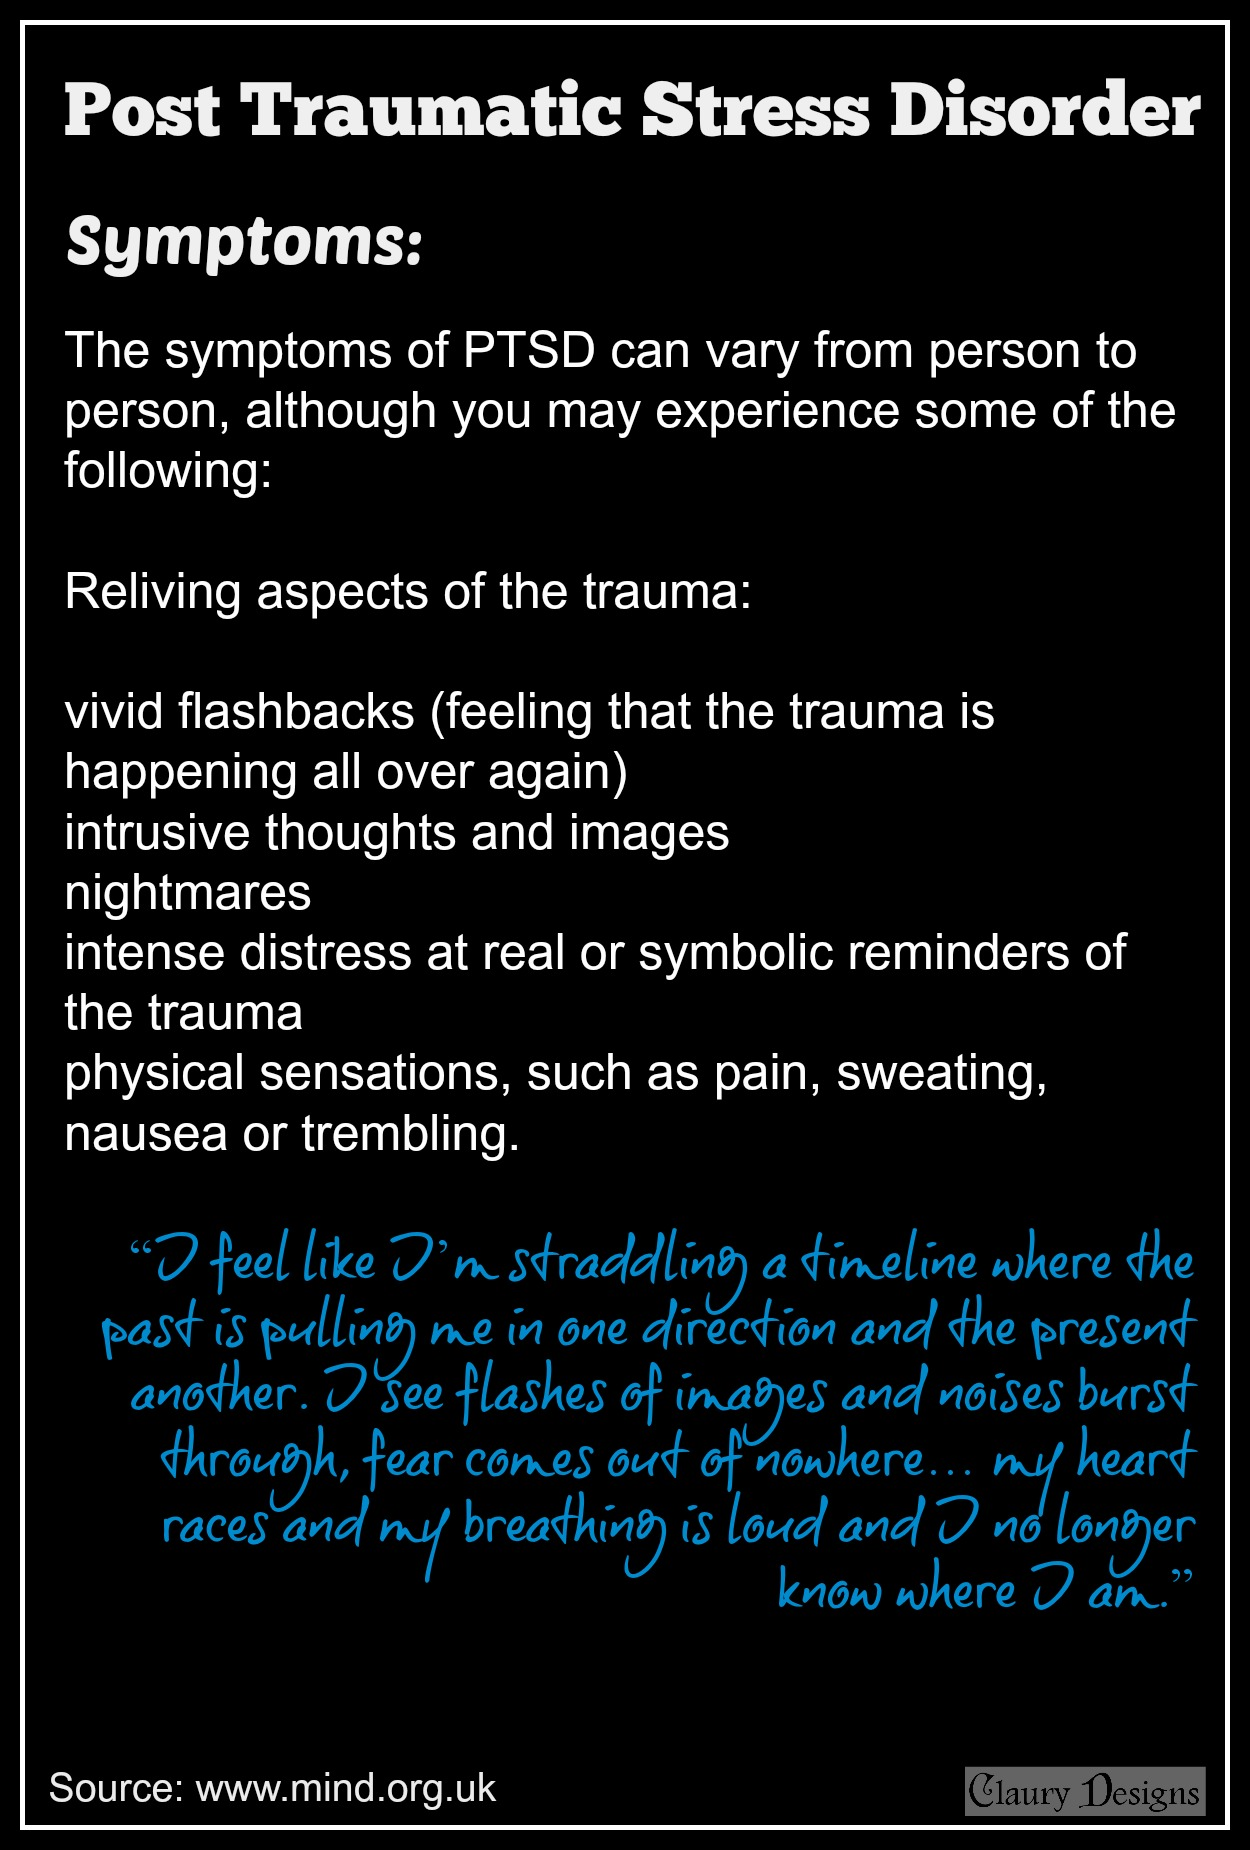 ptsd reliving trauma Post-traumatic stress disorder (ptsd) national institute of mental health us department of health and human services • national institutes of health contents what is post traumatic stress disorder, or ptsd 1 who gets ptsd 1 flashbacks—reliving the trauma over and over.